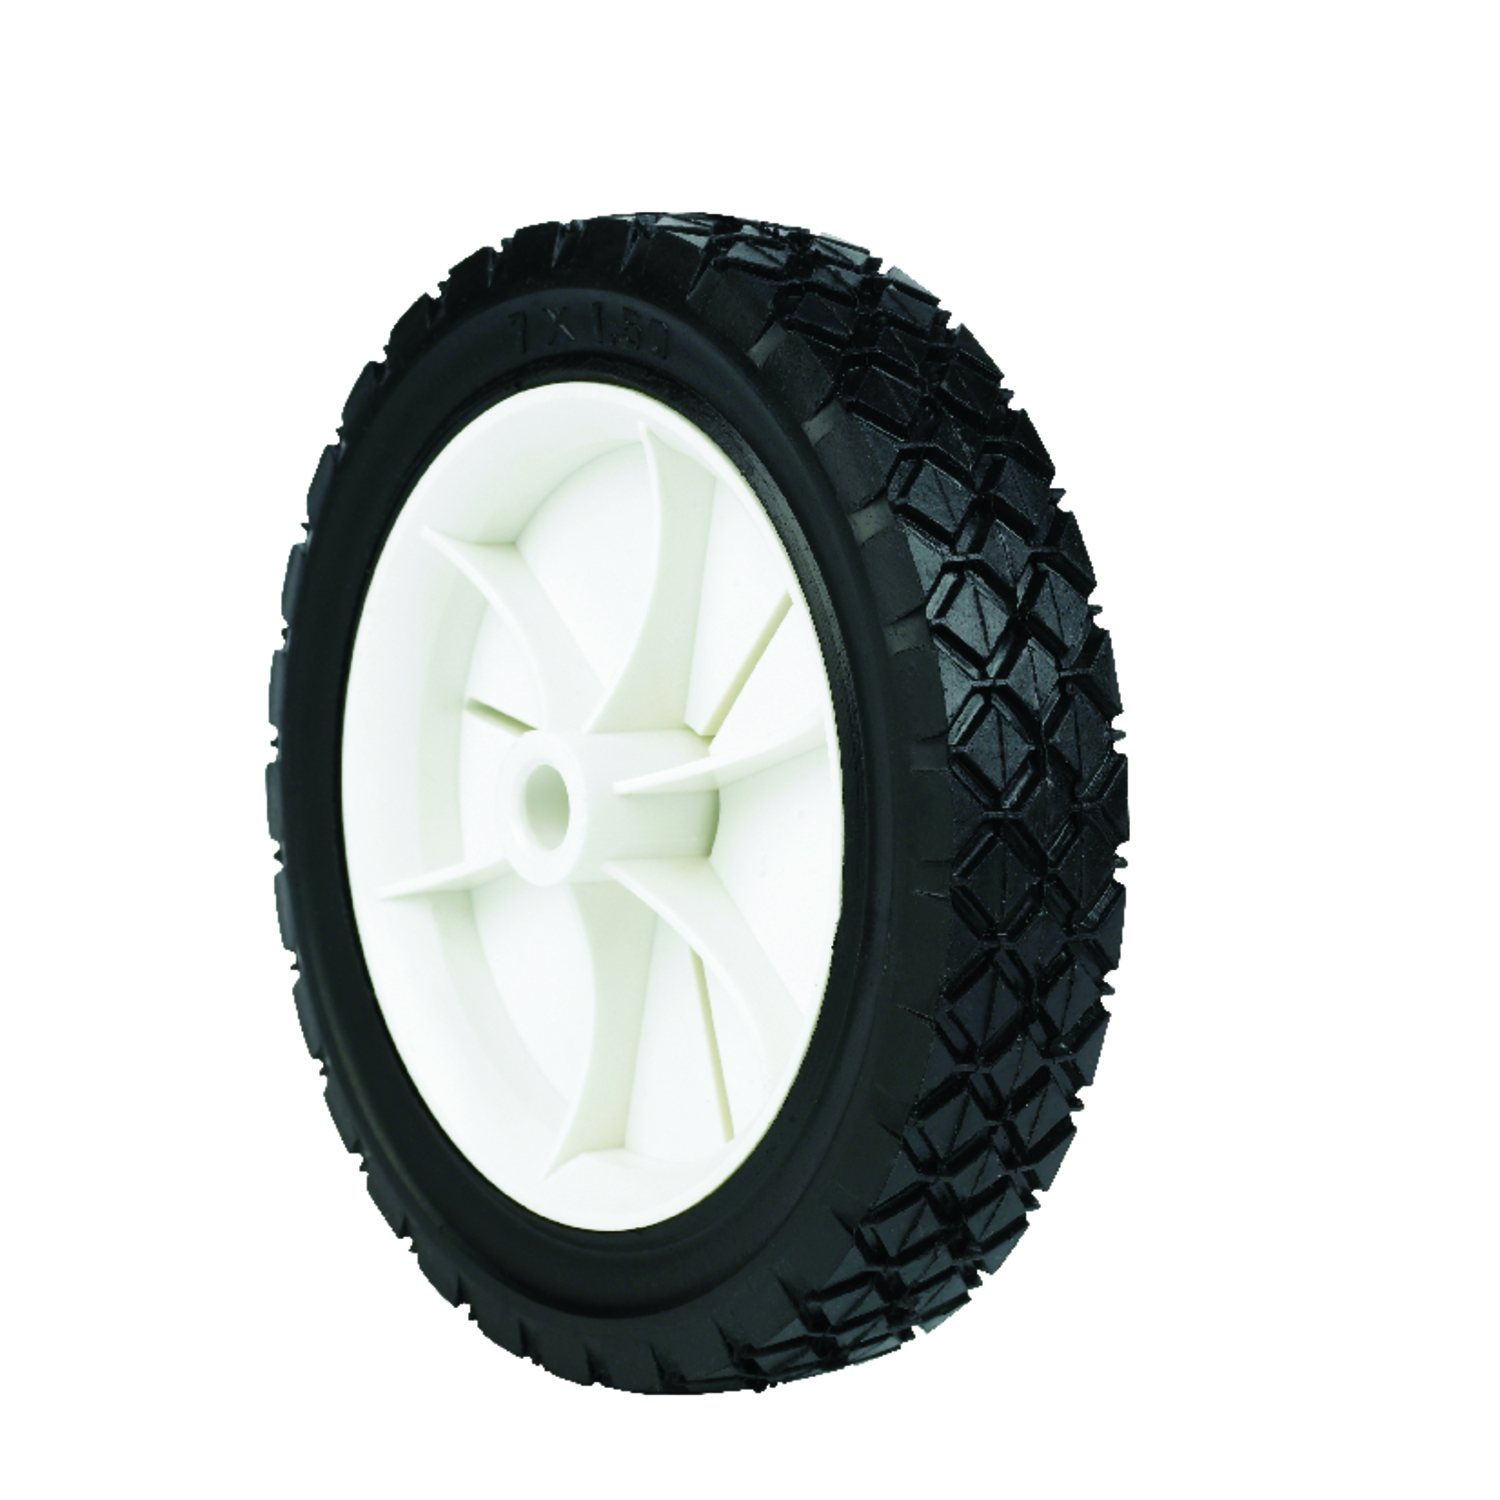 Arnold  7 in. Dia. x 1.5 in. W Lawn Mower Replacement Wheel  50 lb. Plastic